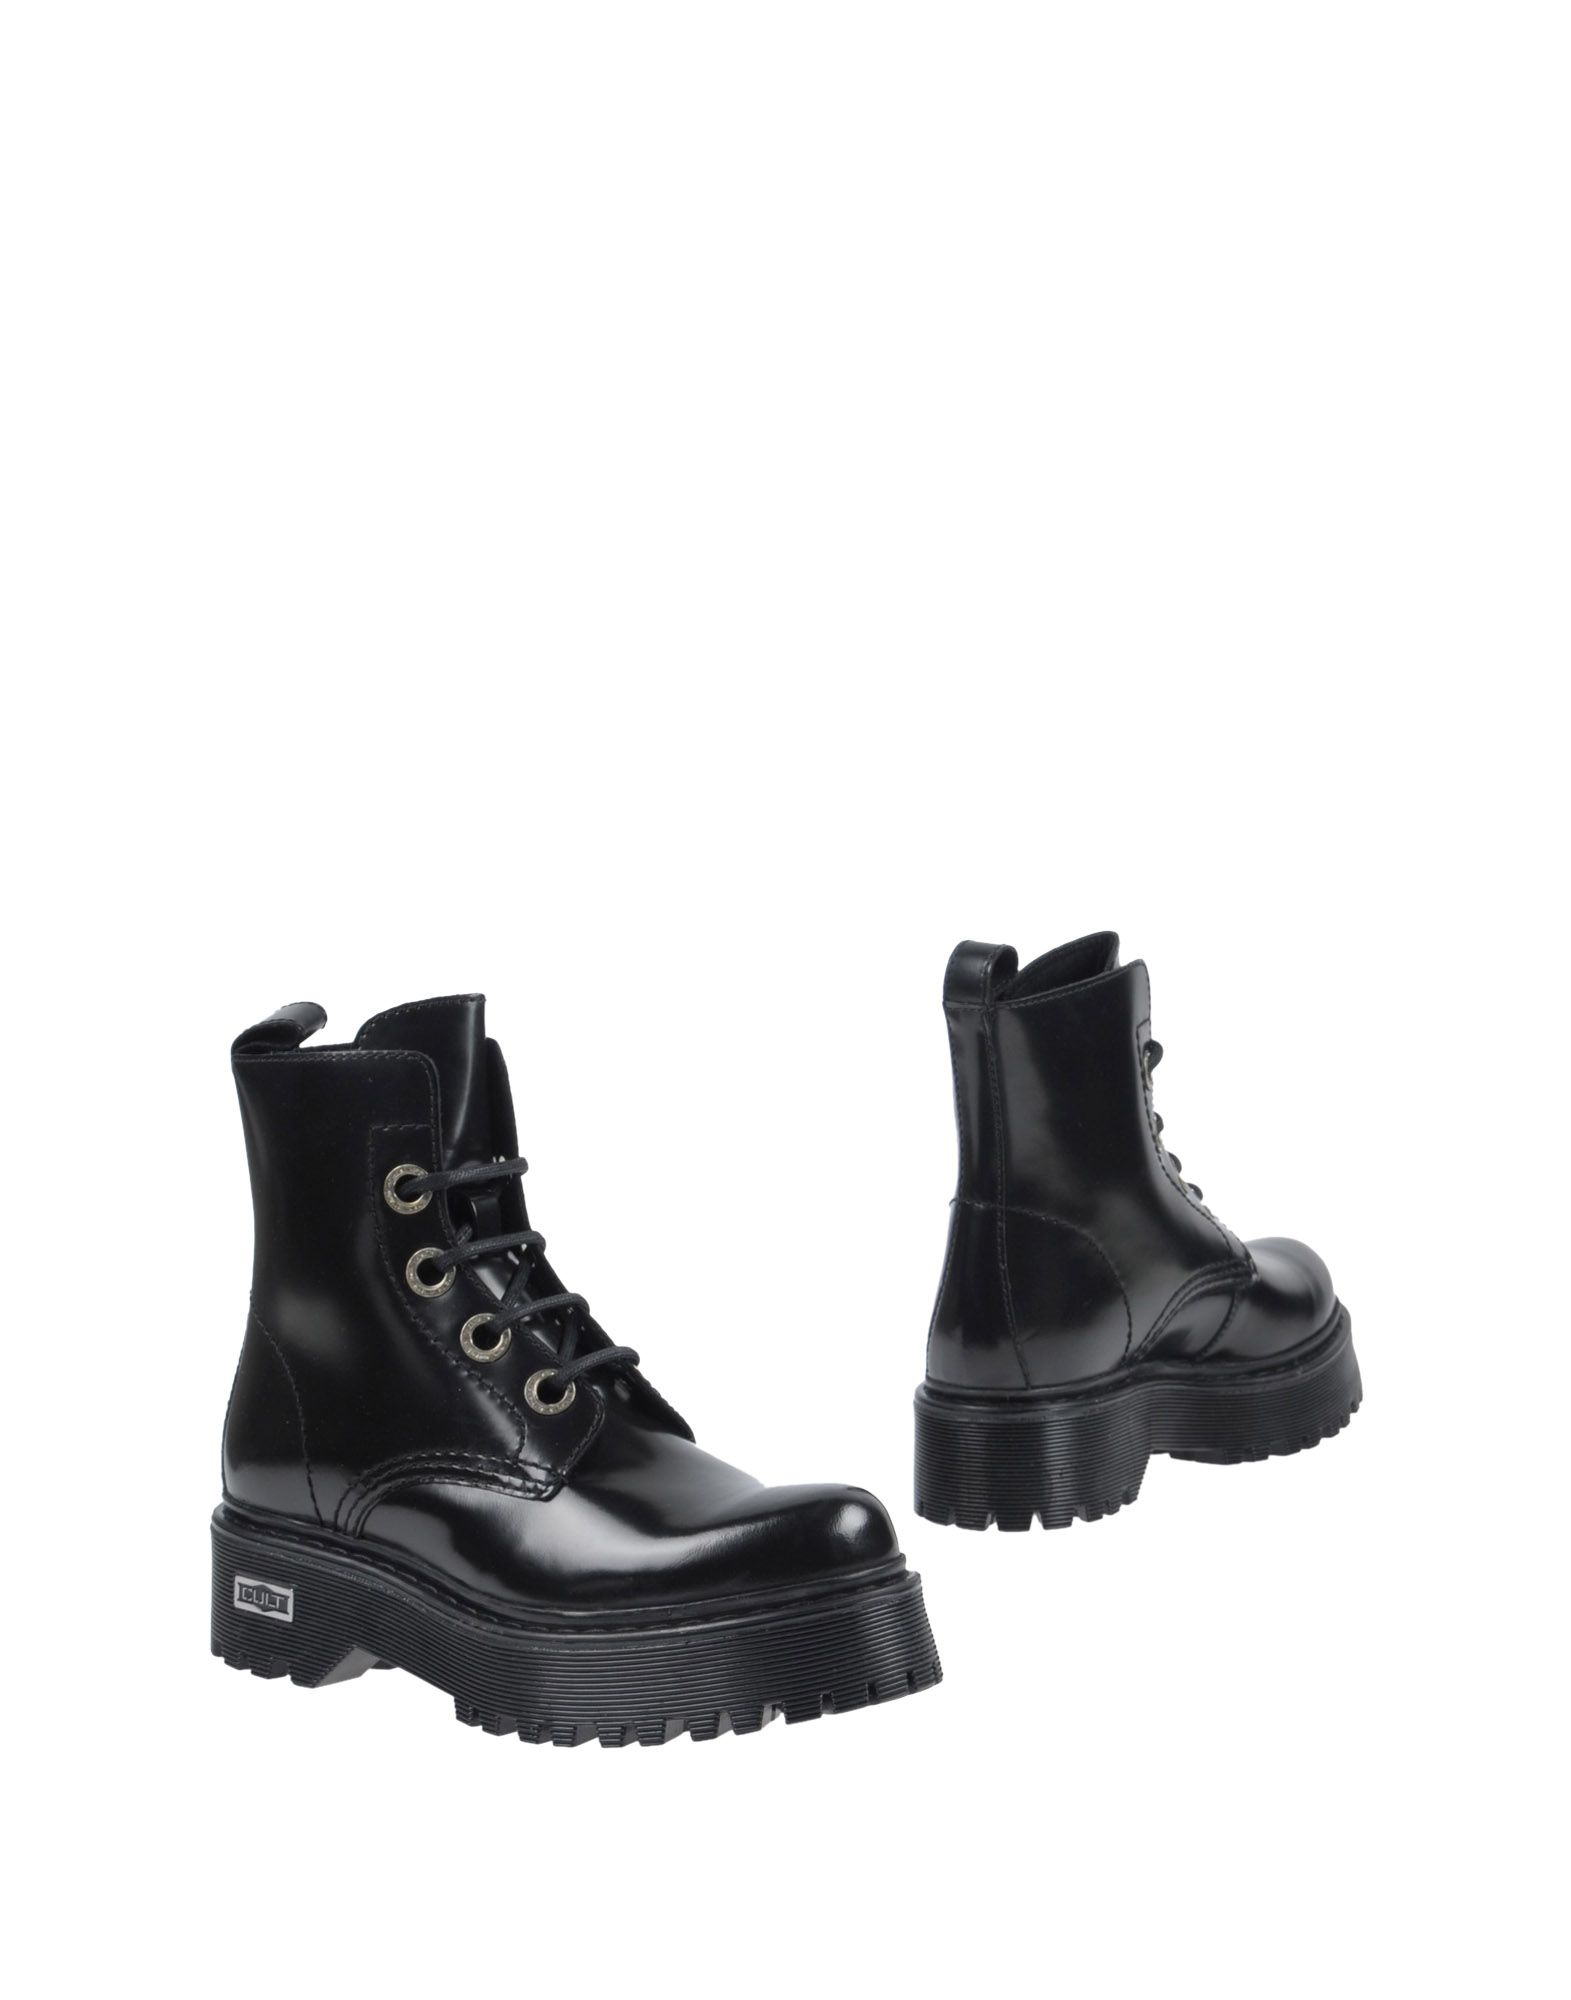 Cult Ankle Boot - Women Cult Ankle Boots online on   on Canada - 11448643MI a3a0a5